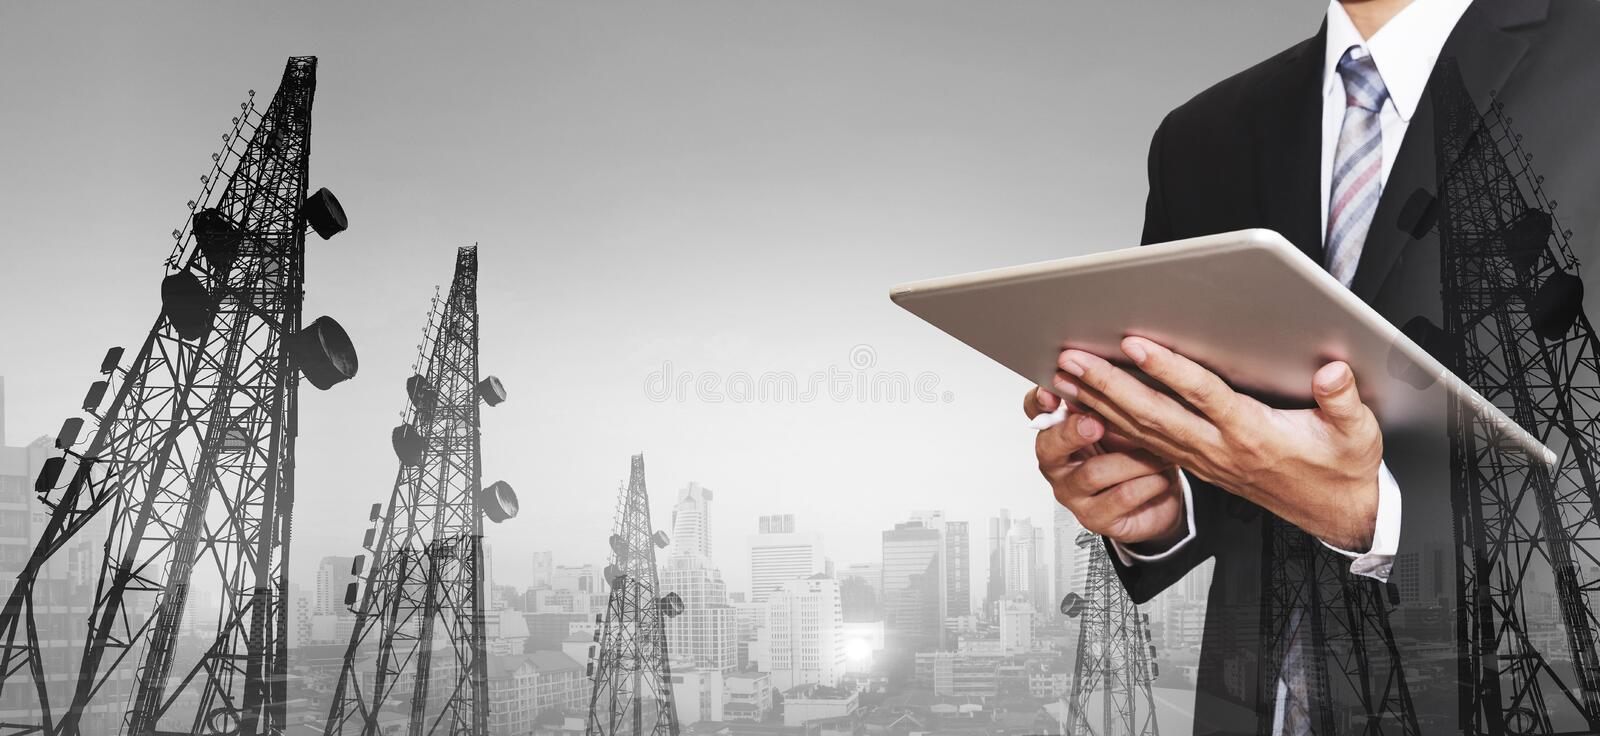 Businessman working on digital tablet, with double exposure panoramic cityscape and telecommunication towers stock photo